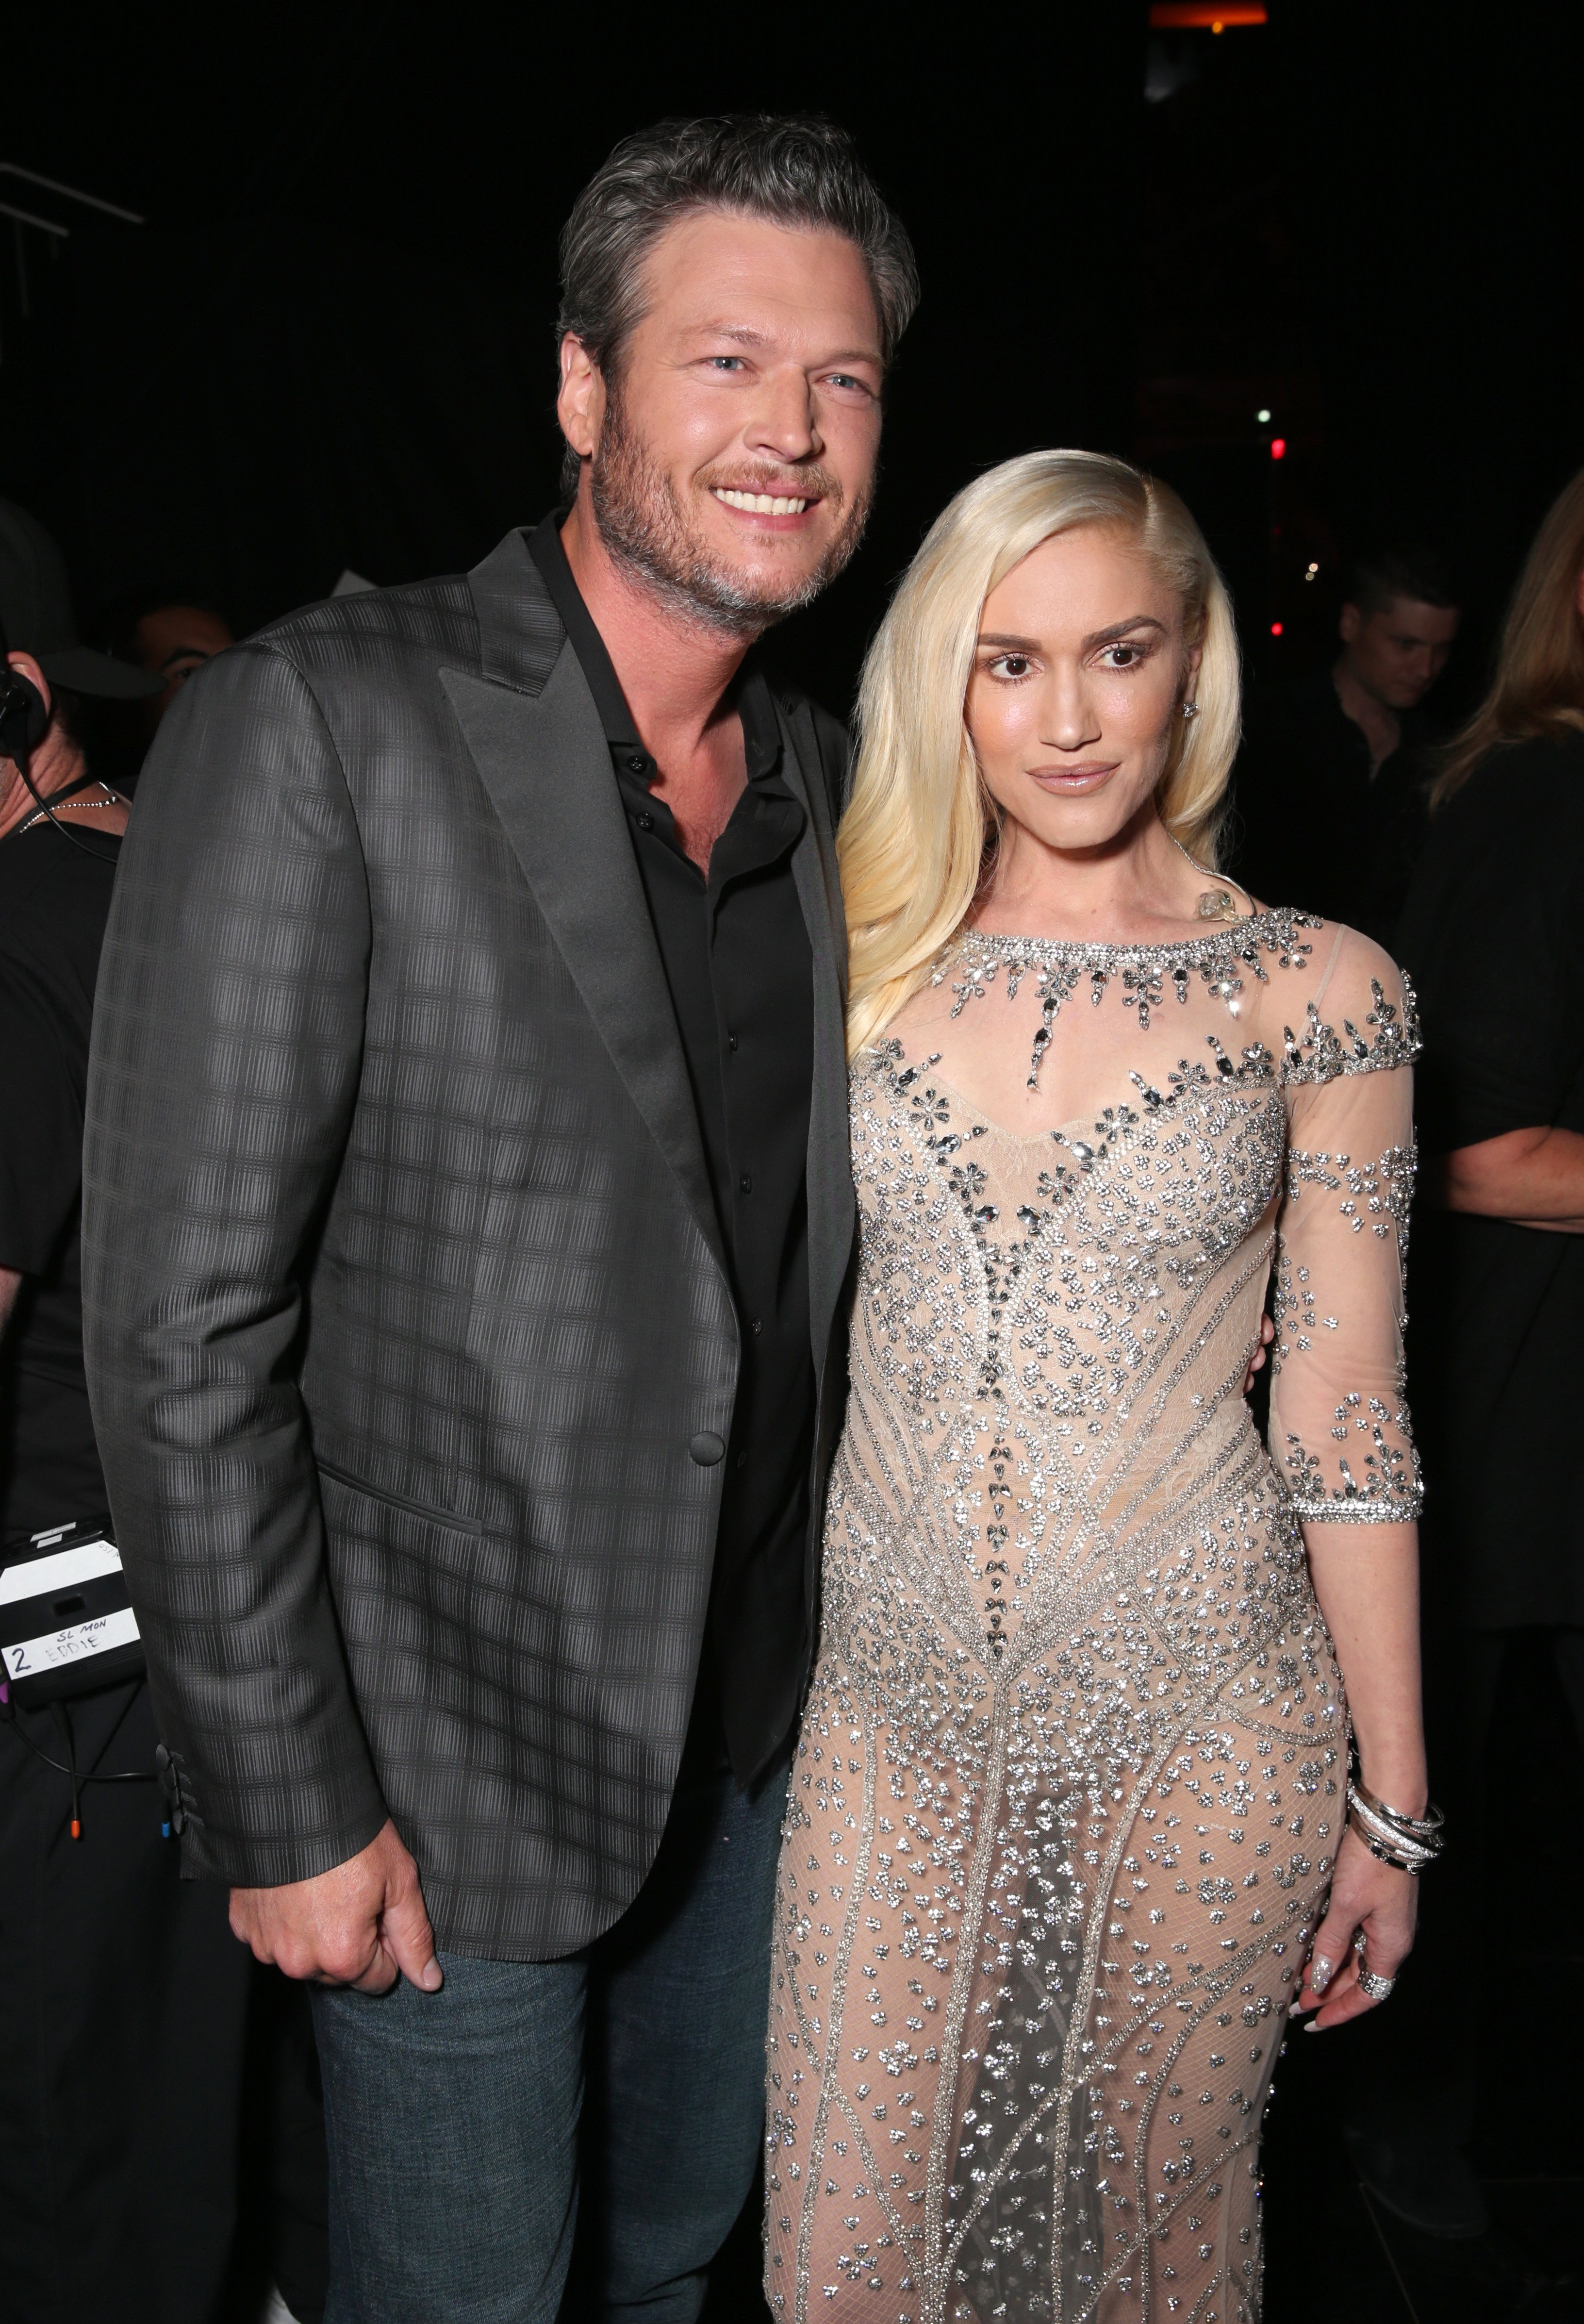 Blake Shelton and Gwen Stefani attend the 2016 Billboard Music Awards. | Photo: GettyImages